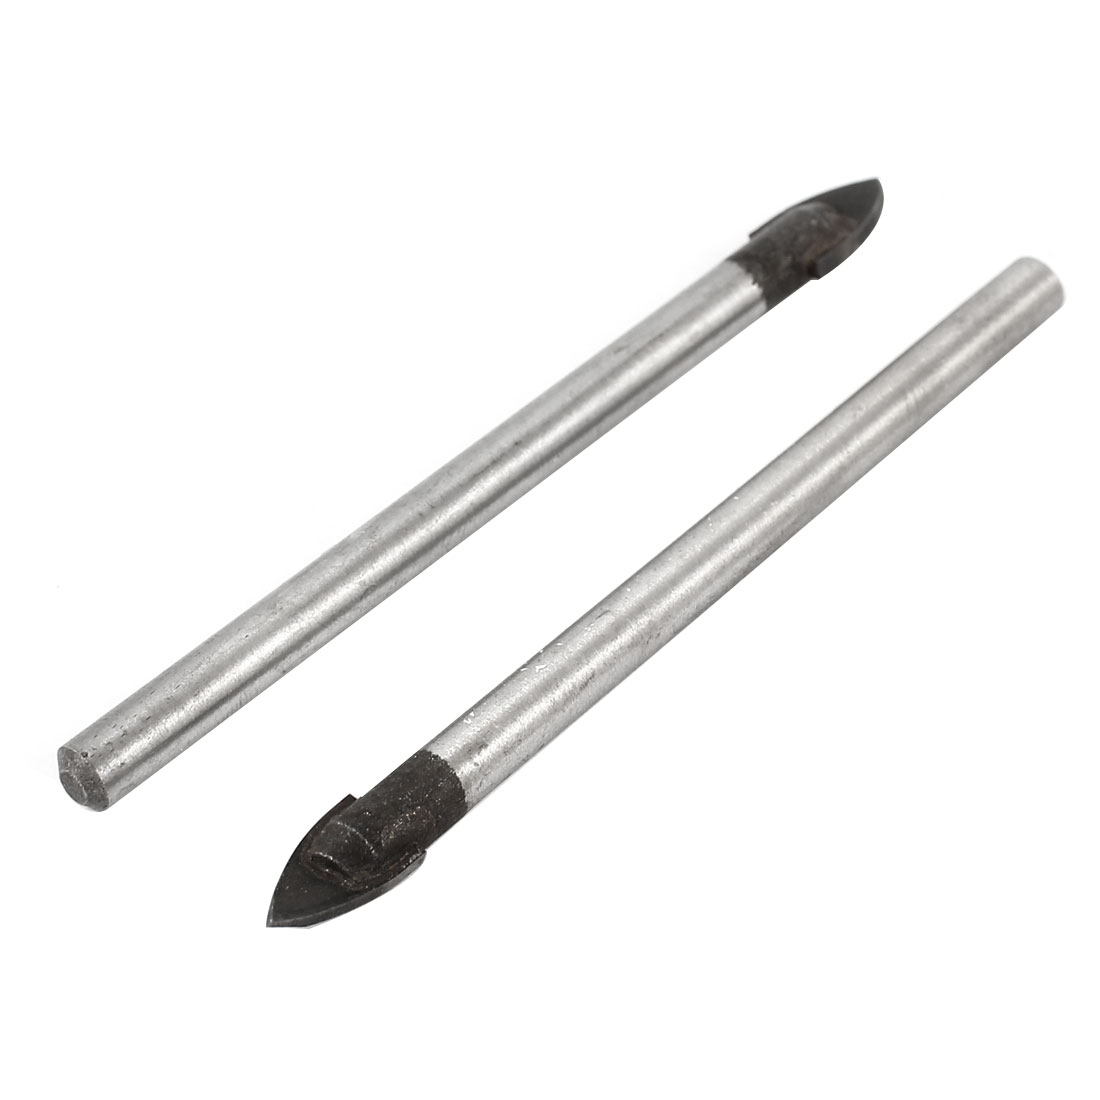 "2pcs 2.87"" Long 5mm Dia Shank Metal Tile Drill Bit for Glass"